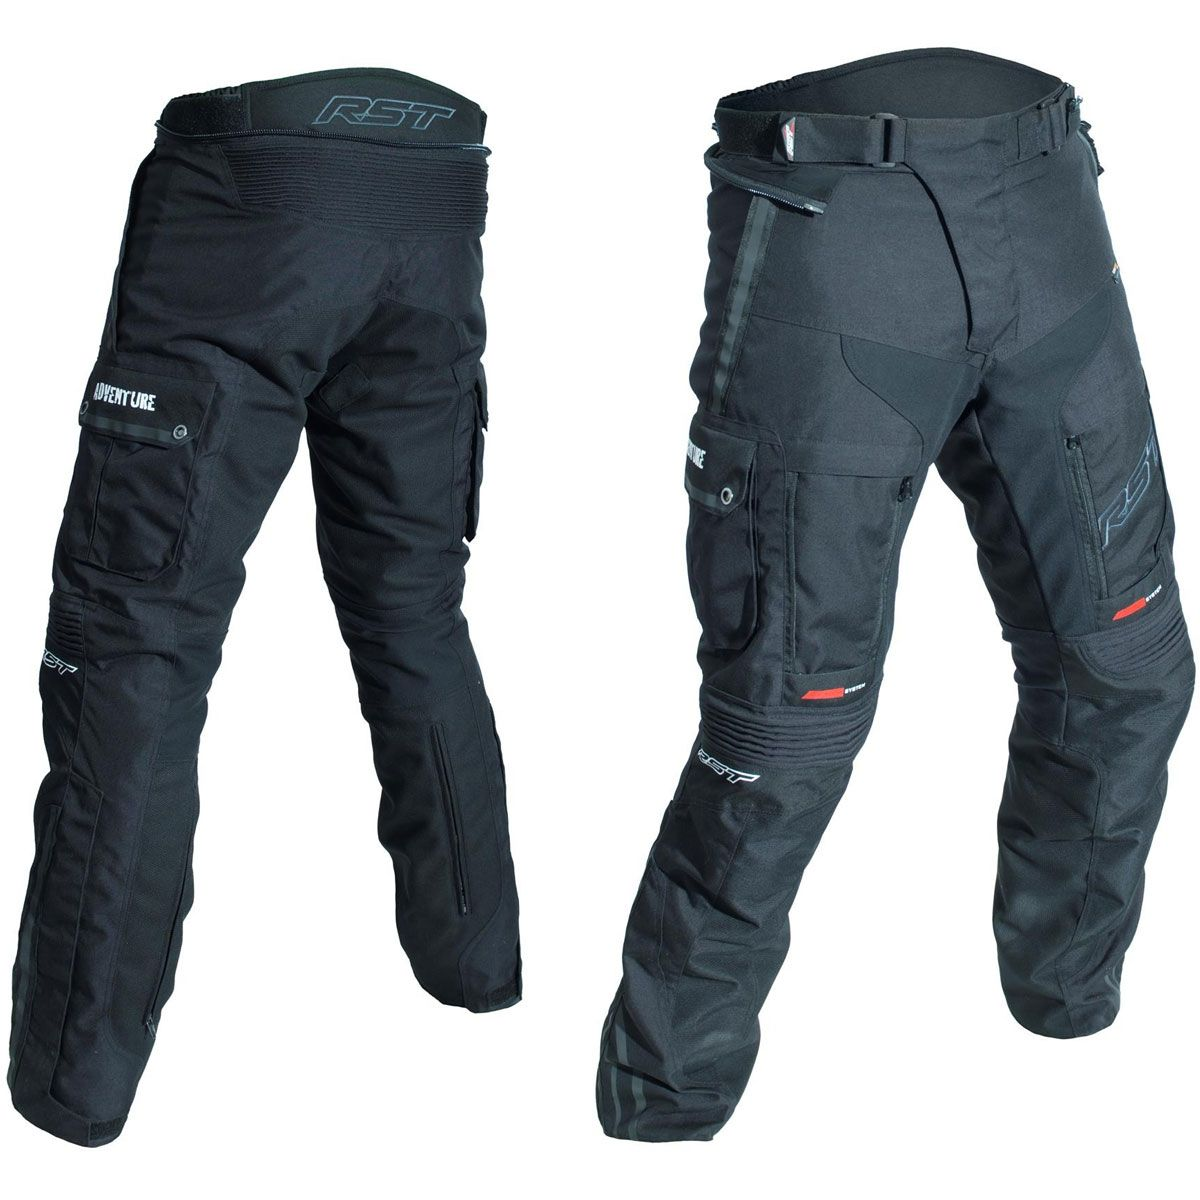 RST Pro Series Adventure III CE Textile Trousers Black